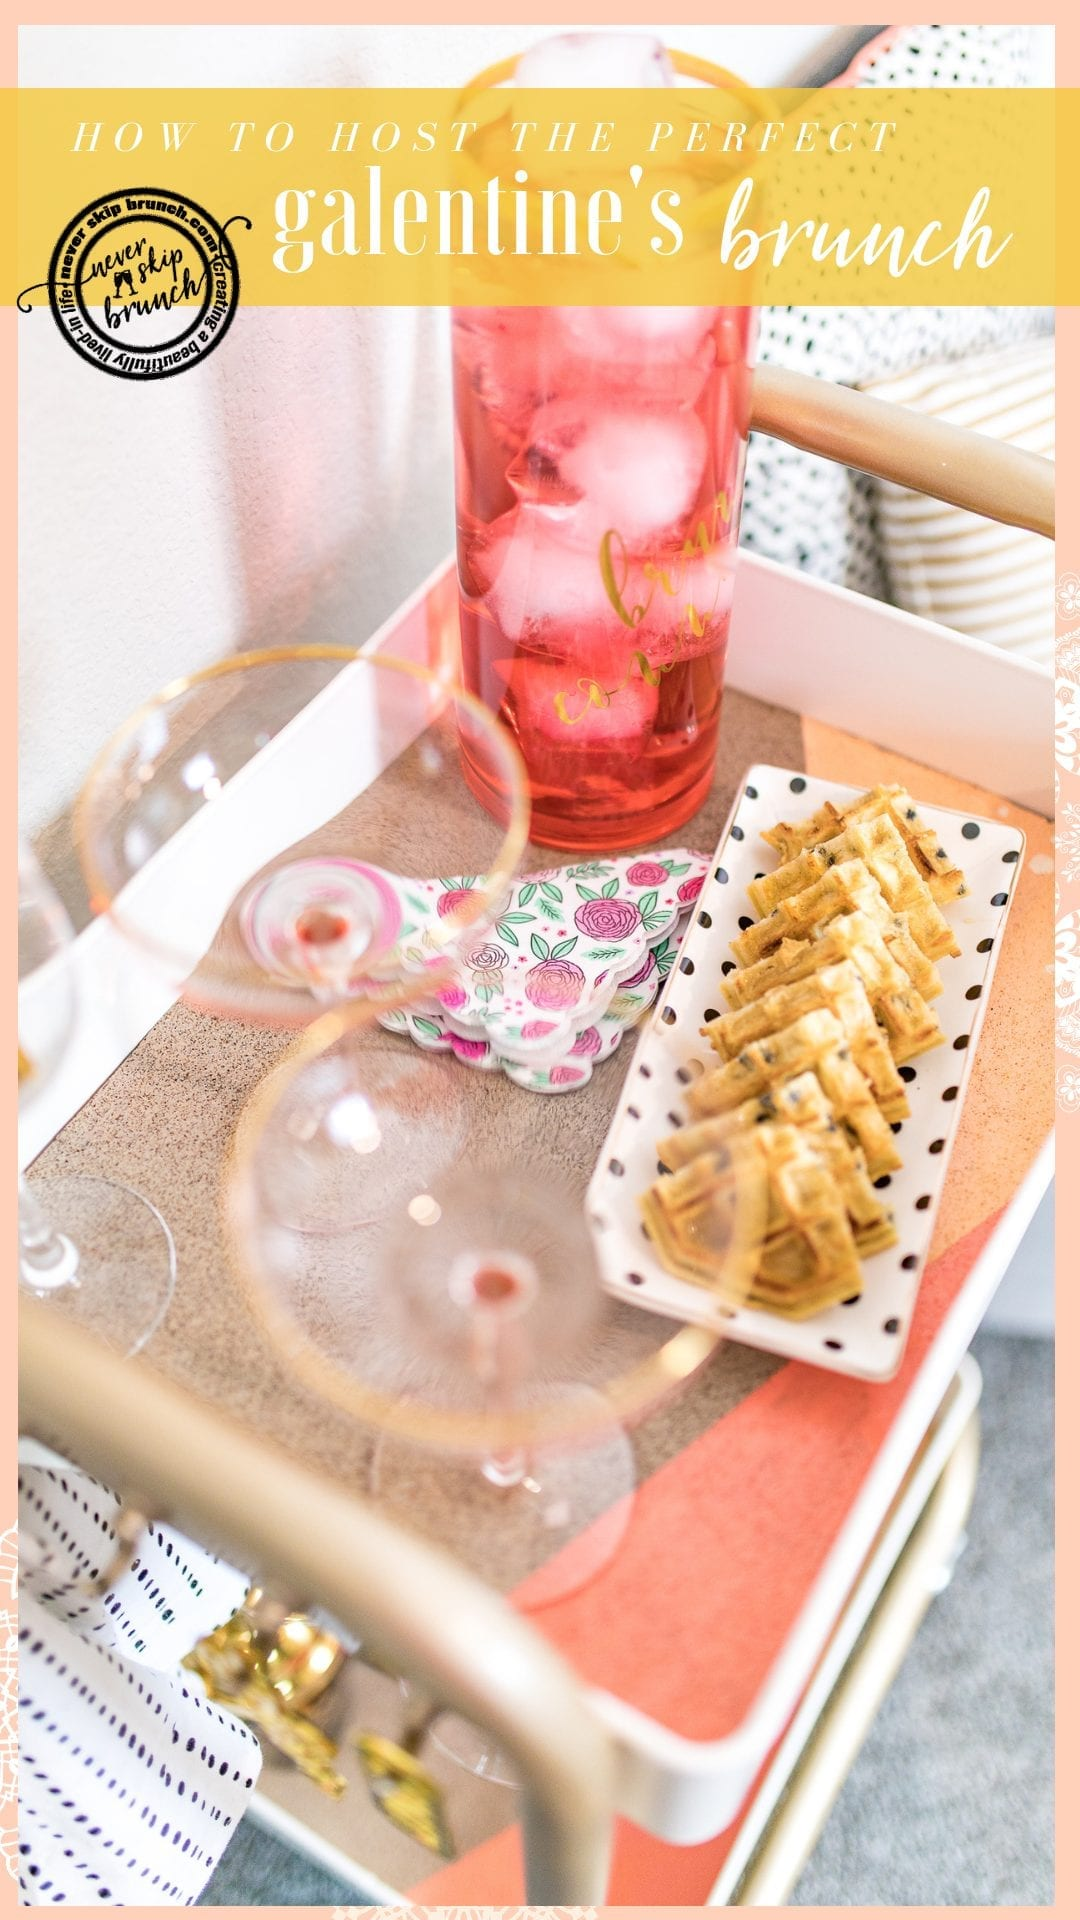 THIS IS PERFECT!! She has such great tips! | galentines day brunch | galentines day party | galentines day brunch ideas | galentines day brunch decorations | galentines day brunch food | valentines day brunch | Never Skip Brunch by Cara Newhart | #Brunch #Galentines #valentines #neverskipbrunch